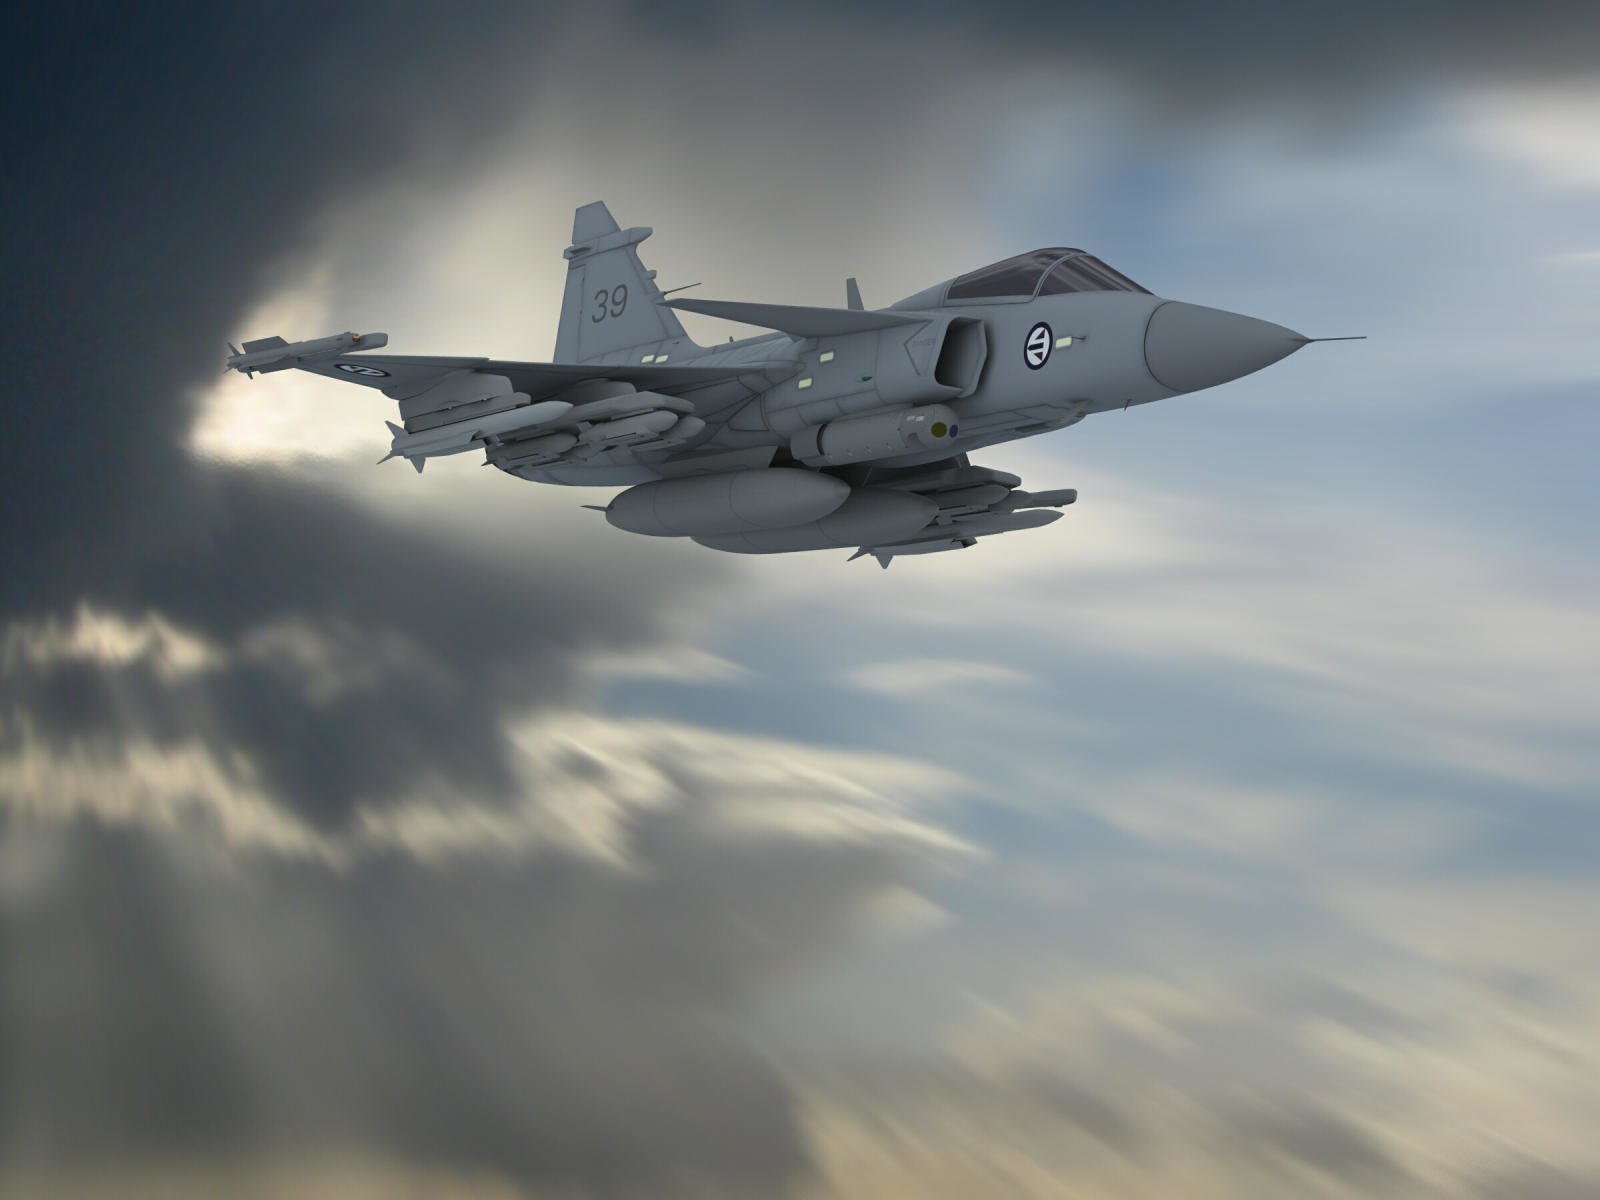 Jets Wallpaper Iphone Saab Jas 39 Gripen Wallpaper And Background Image